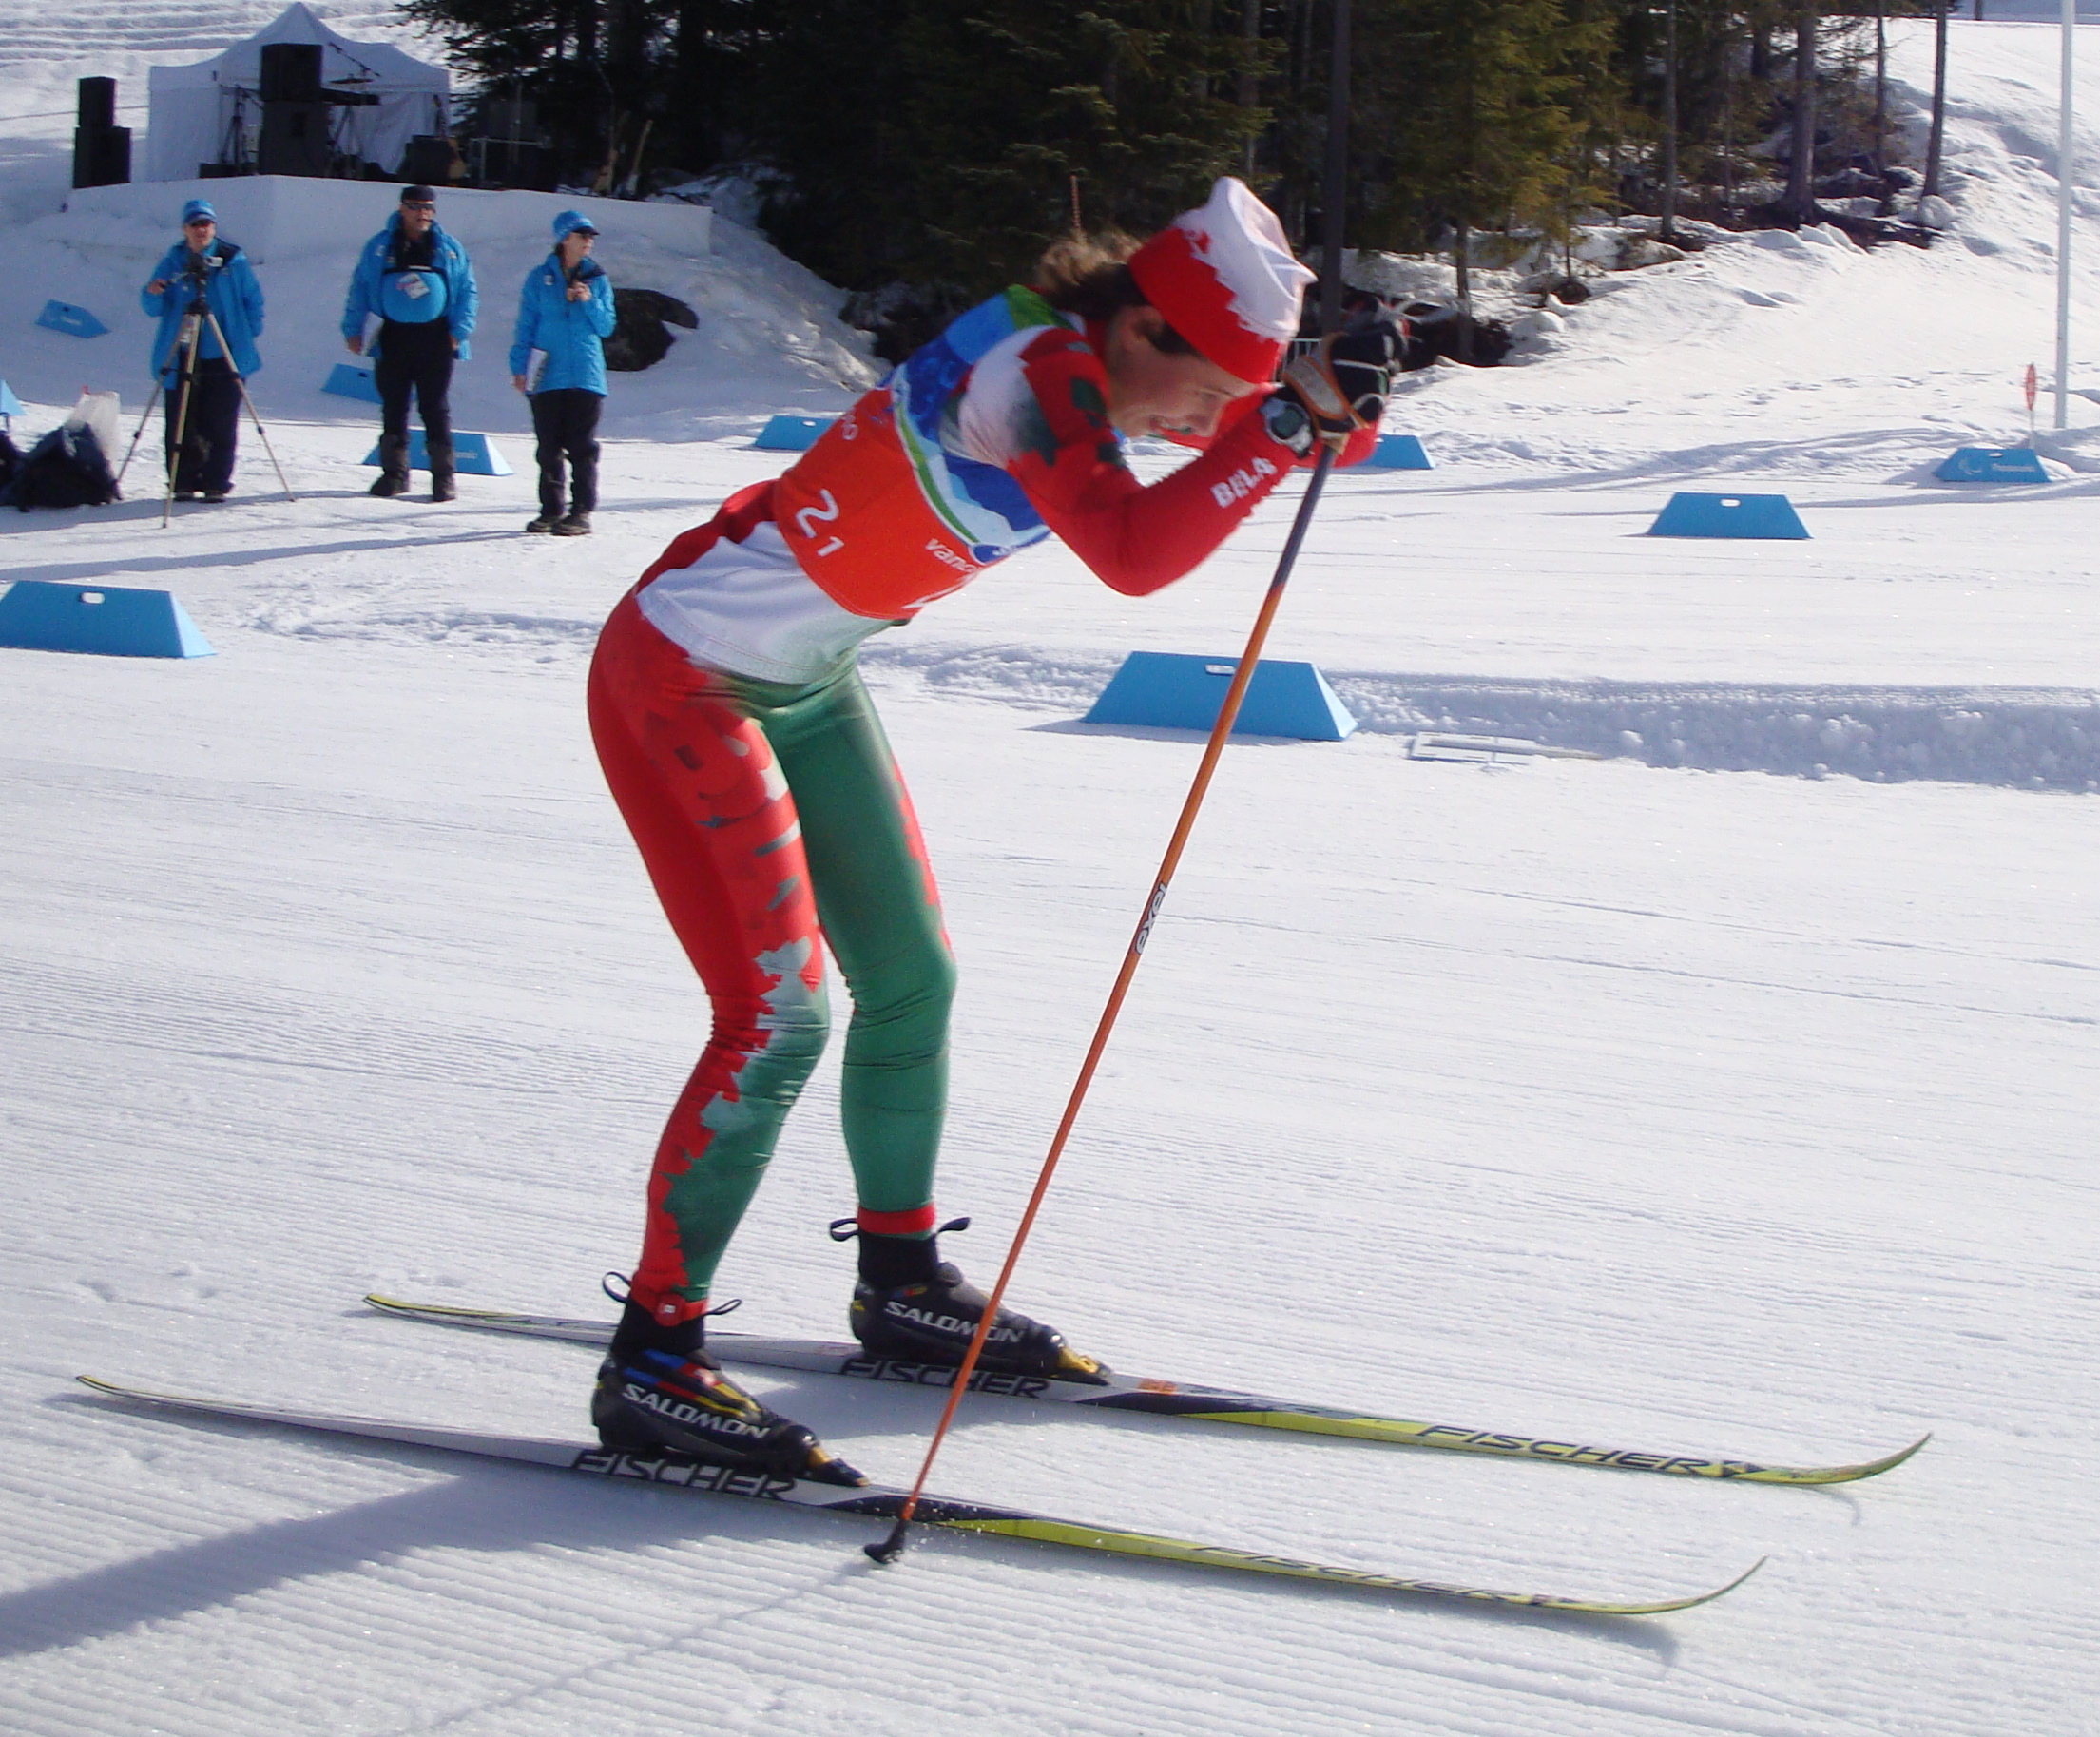 Cross Country Skiing At The 2002 Winter Paralympics